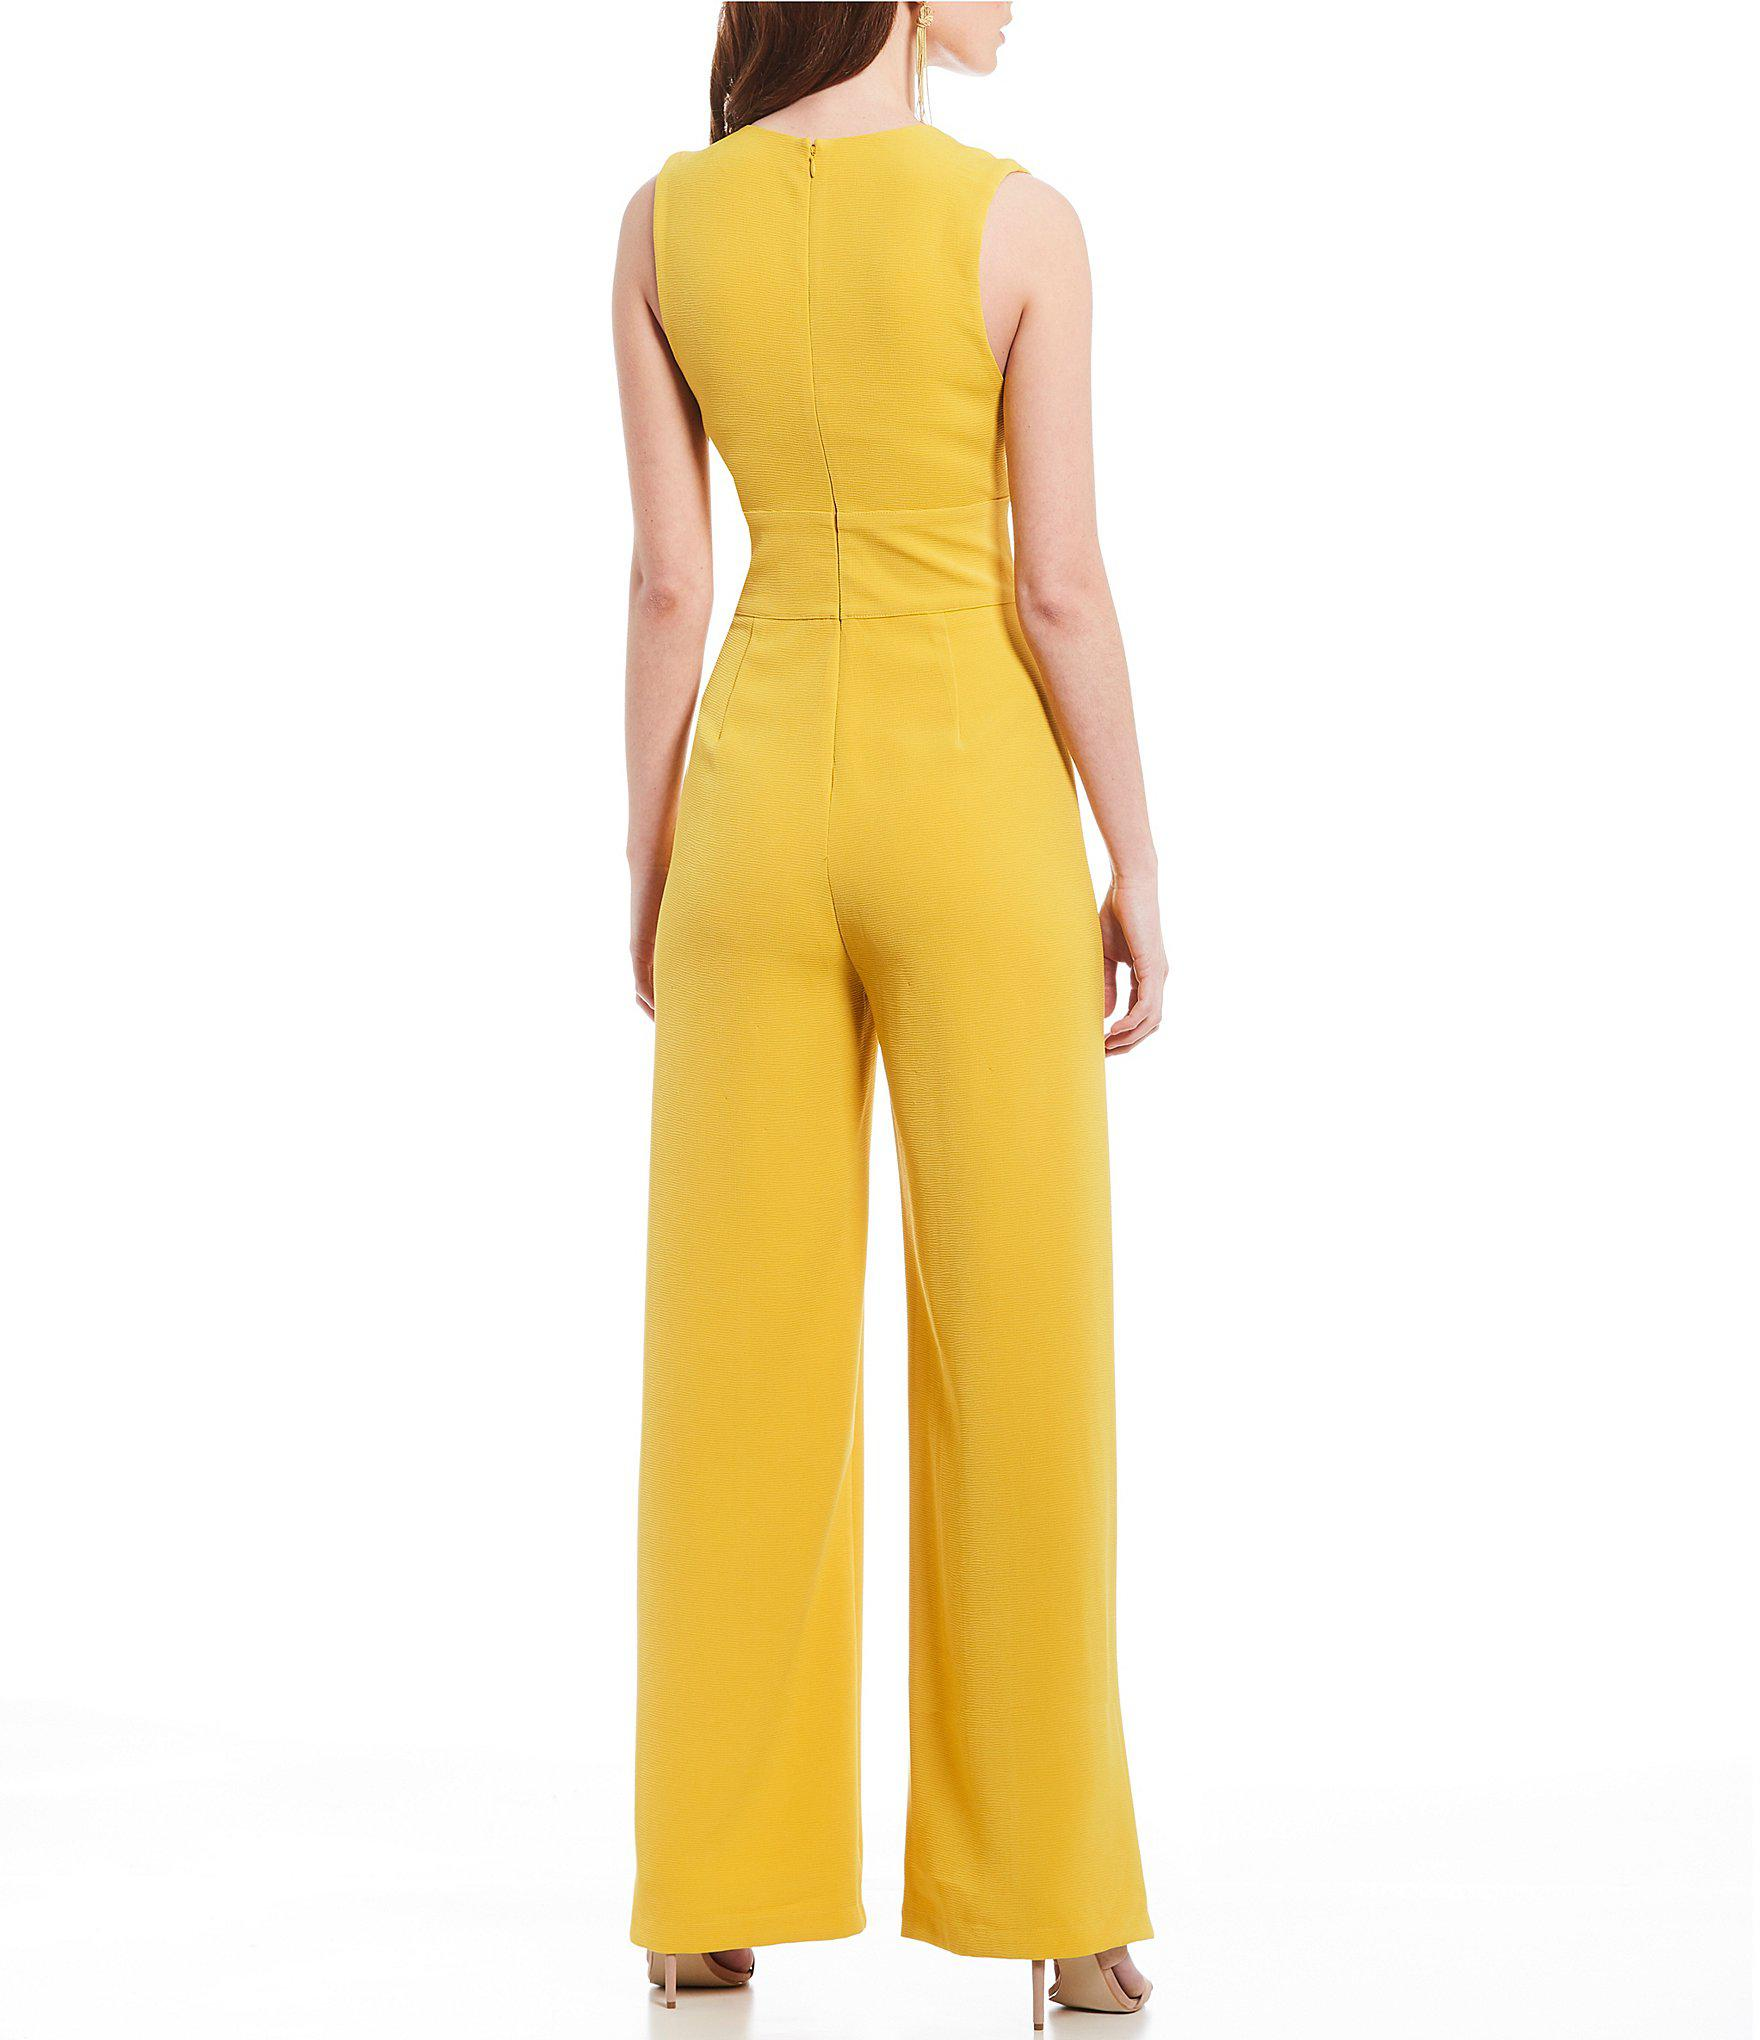 d438627a6b4a Lyst - Sugarlips Wide Leg Jumpsuit in Yellow